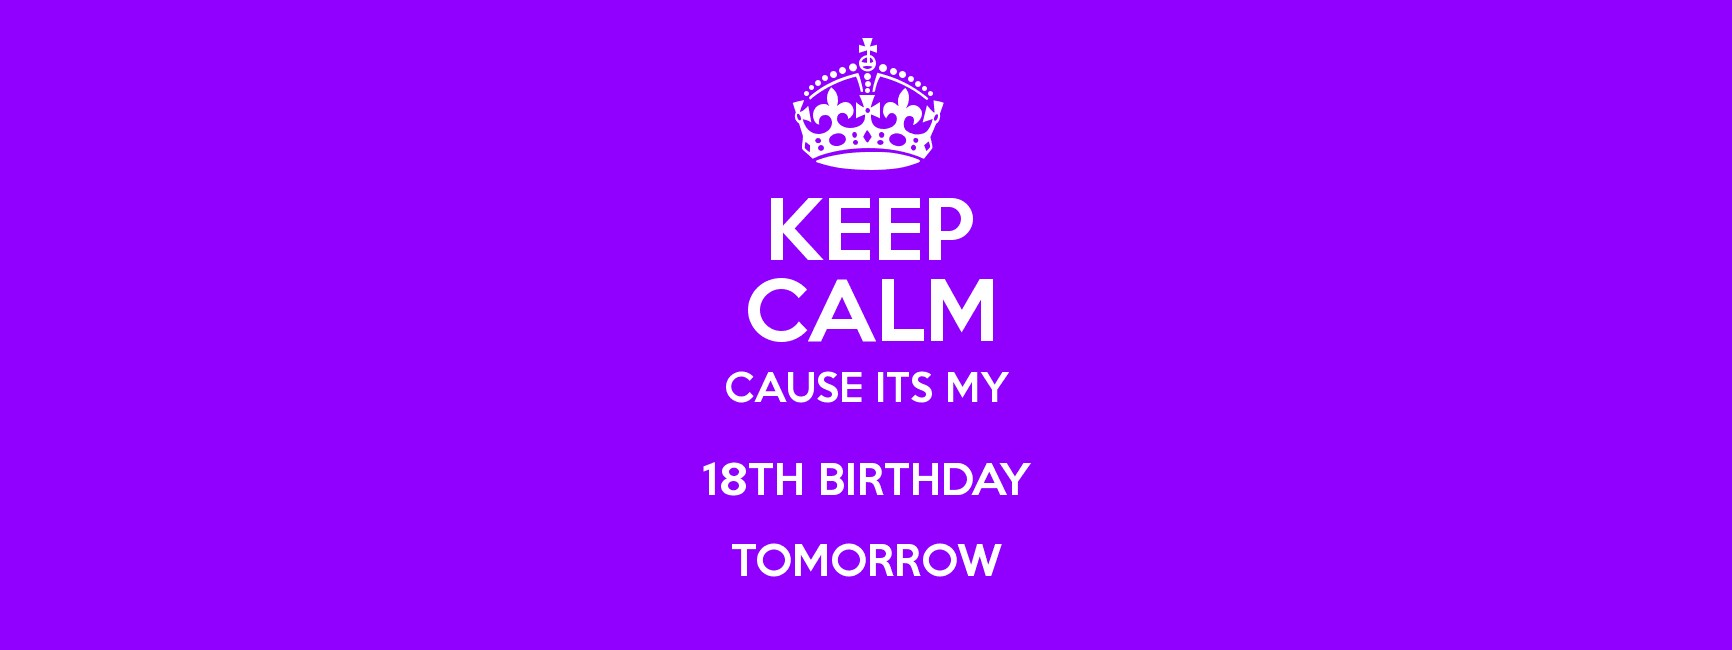 Keep calm cause its my 18th birthday tomorrow keep calm and keep calm cause its my 18th birthday tomorrow poster altavistaventures Gallery